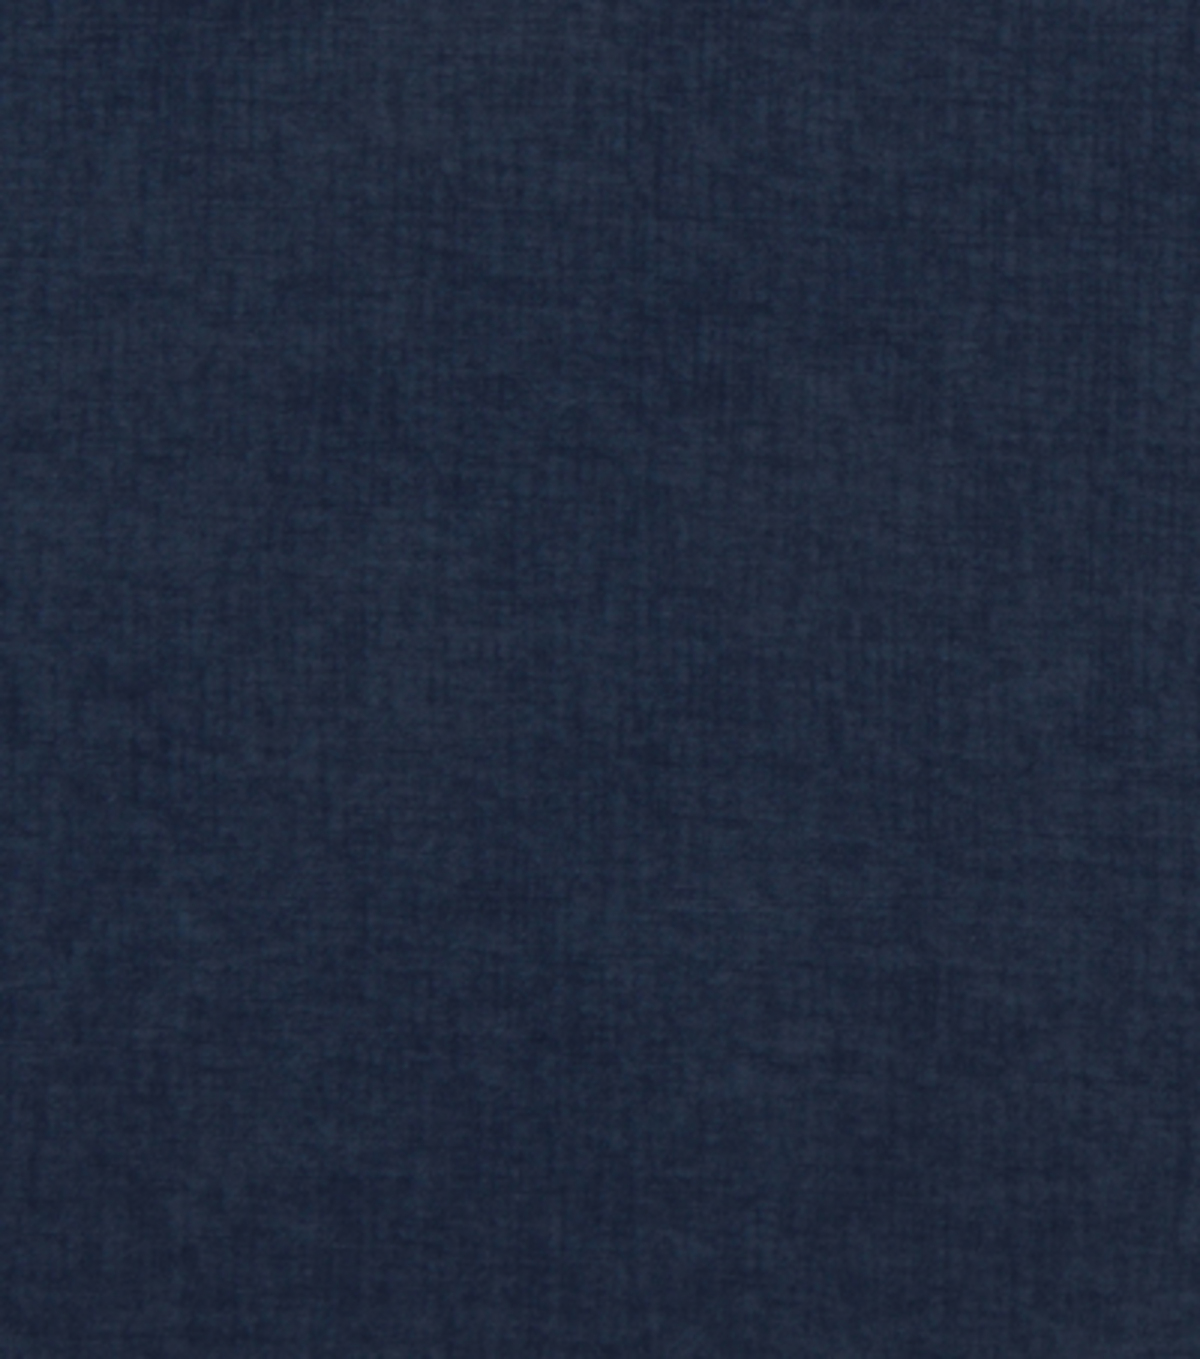 Home Decor 8\u0022x8\u0022 Fabric Swatch-Covington Hanson 593 Indigo